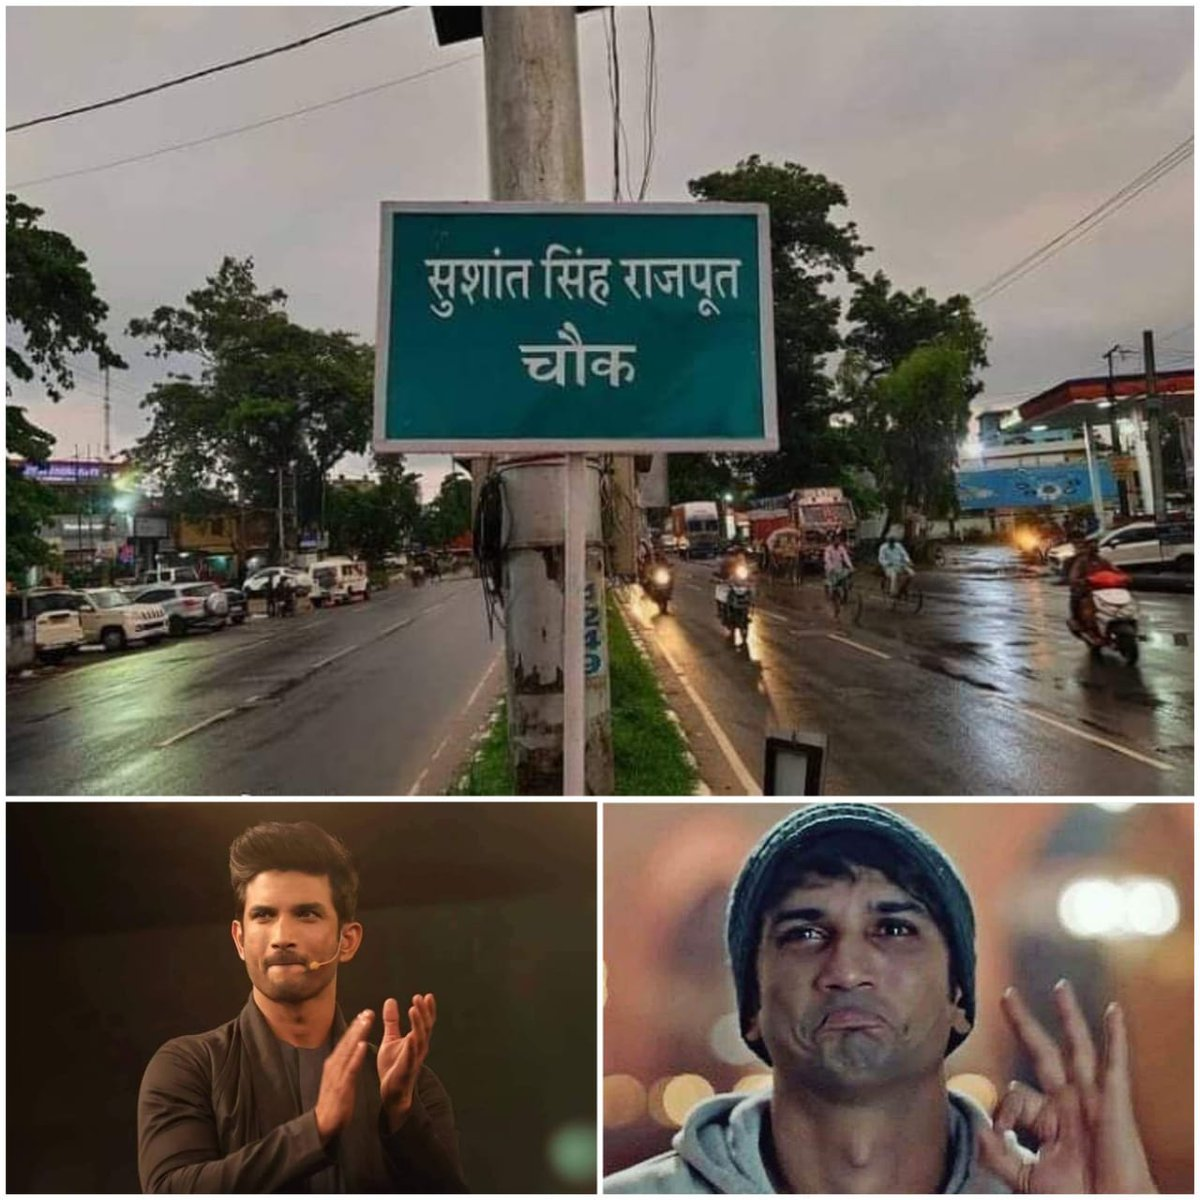 Happy'Birthday🥞🧁 #SushantSinghRajput  U will Always Remain in Our 💓 Heart.The most & Telented Person.Lots Of Love  #AjayDevgnFans 😢 #SushantDay